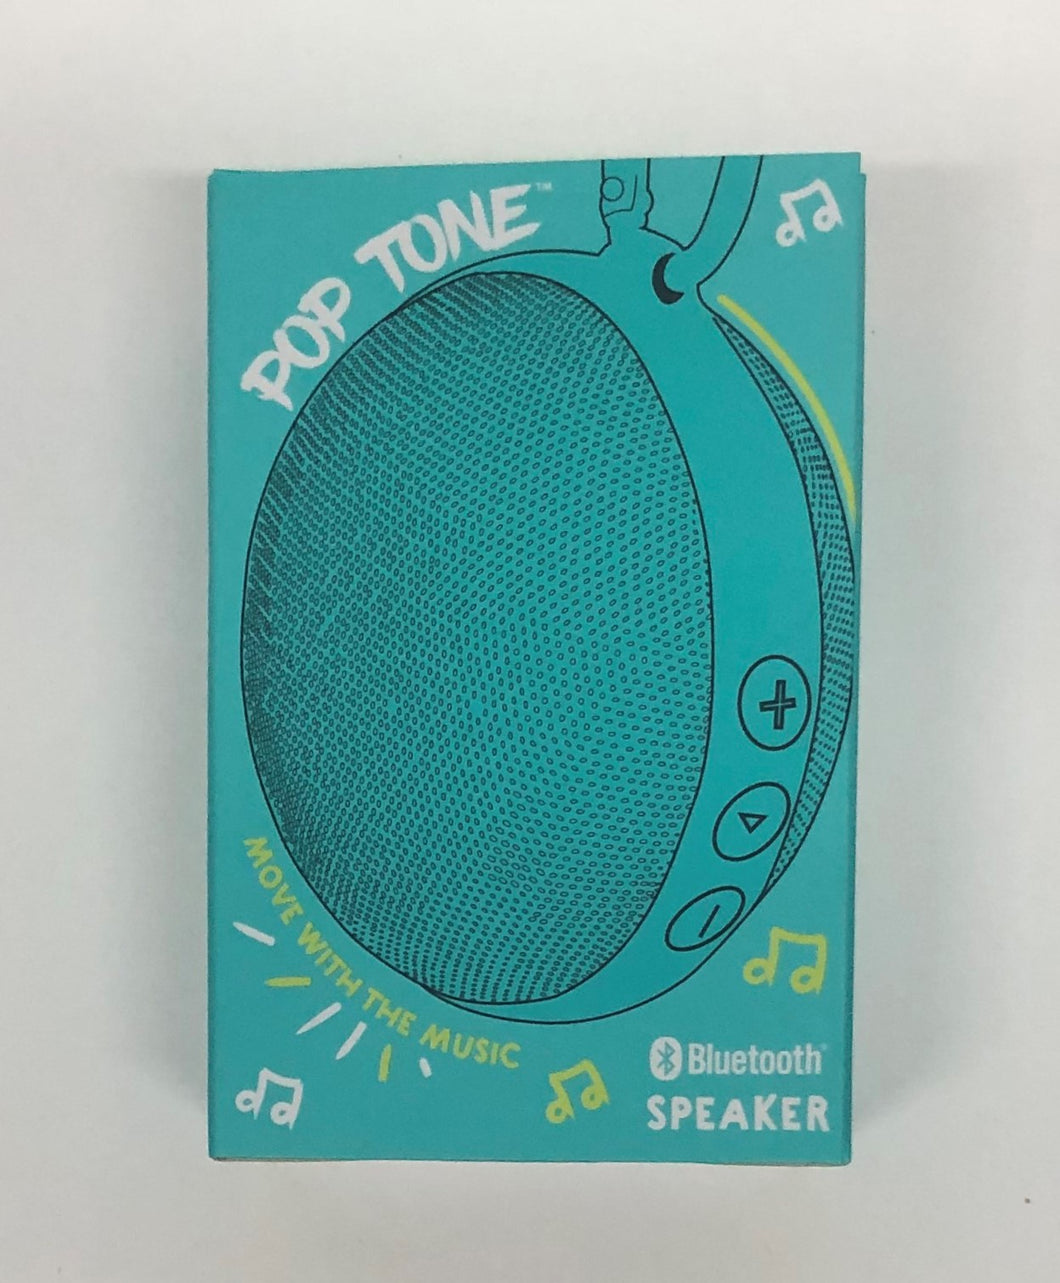 Pop Tone Bluetooth Speaker